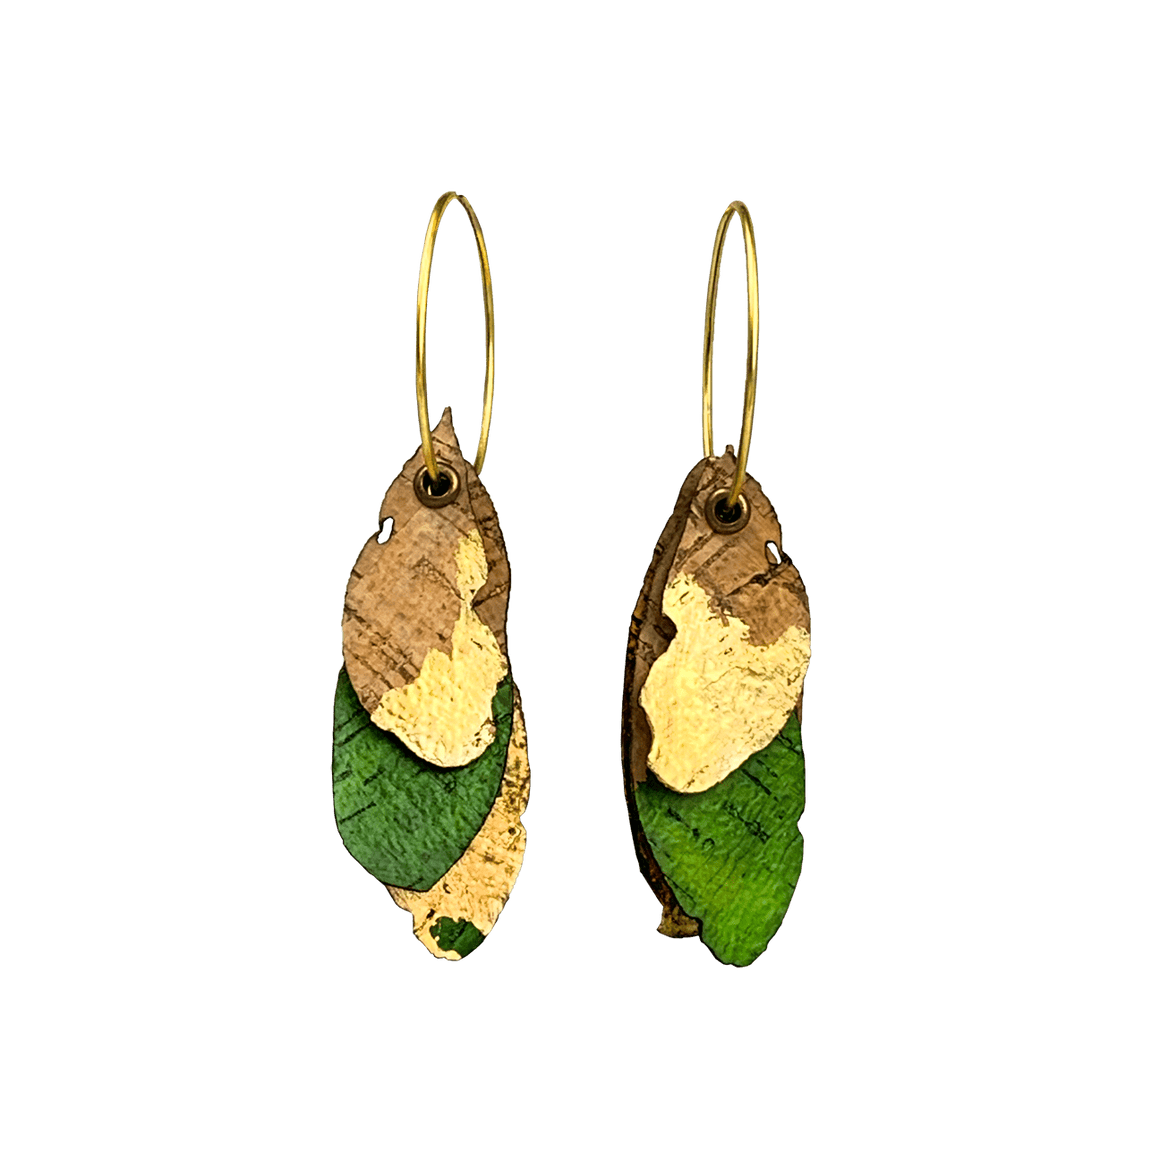 kkennedy Earrings Hoop Earrings - 3 Cork Oak Leaves